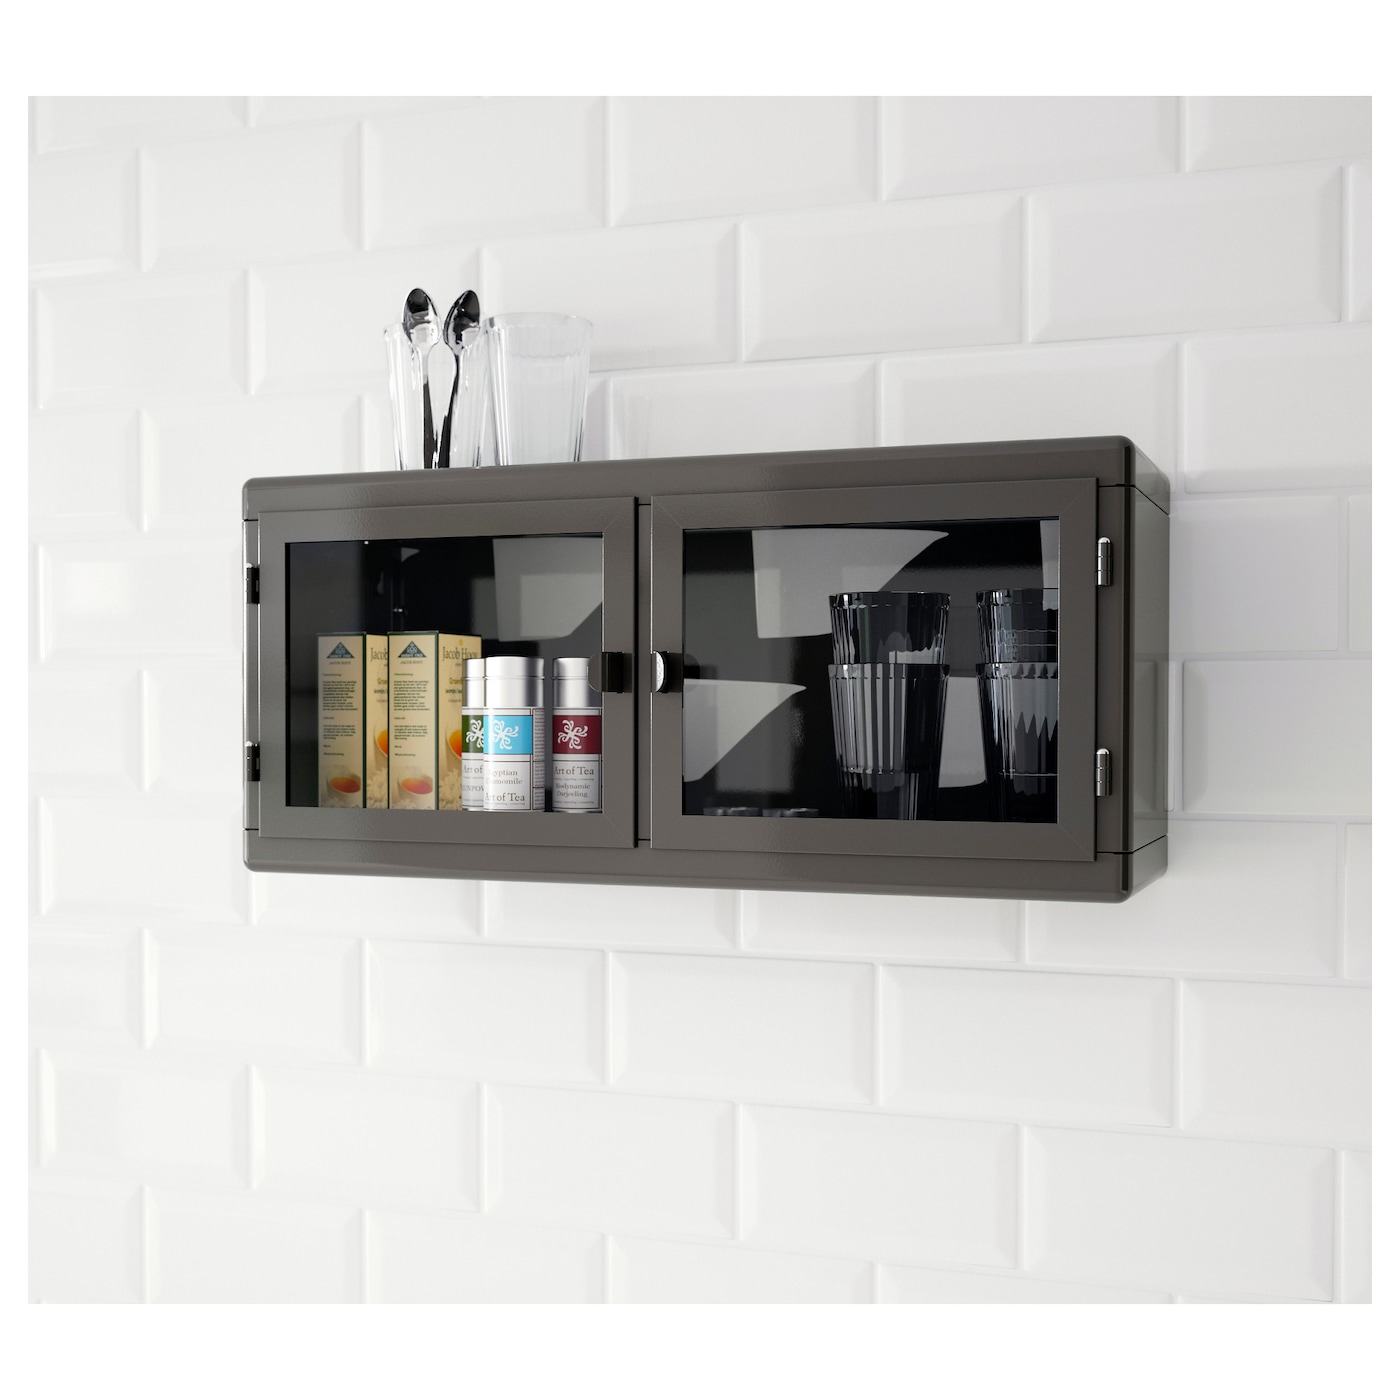 Ikea Kitchen Wall Storage: RÅSKOG Wall Cabinet Dark Grey/glass 60x27 Cm